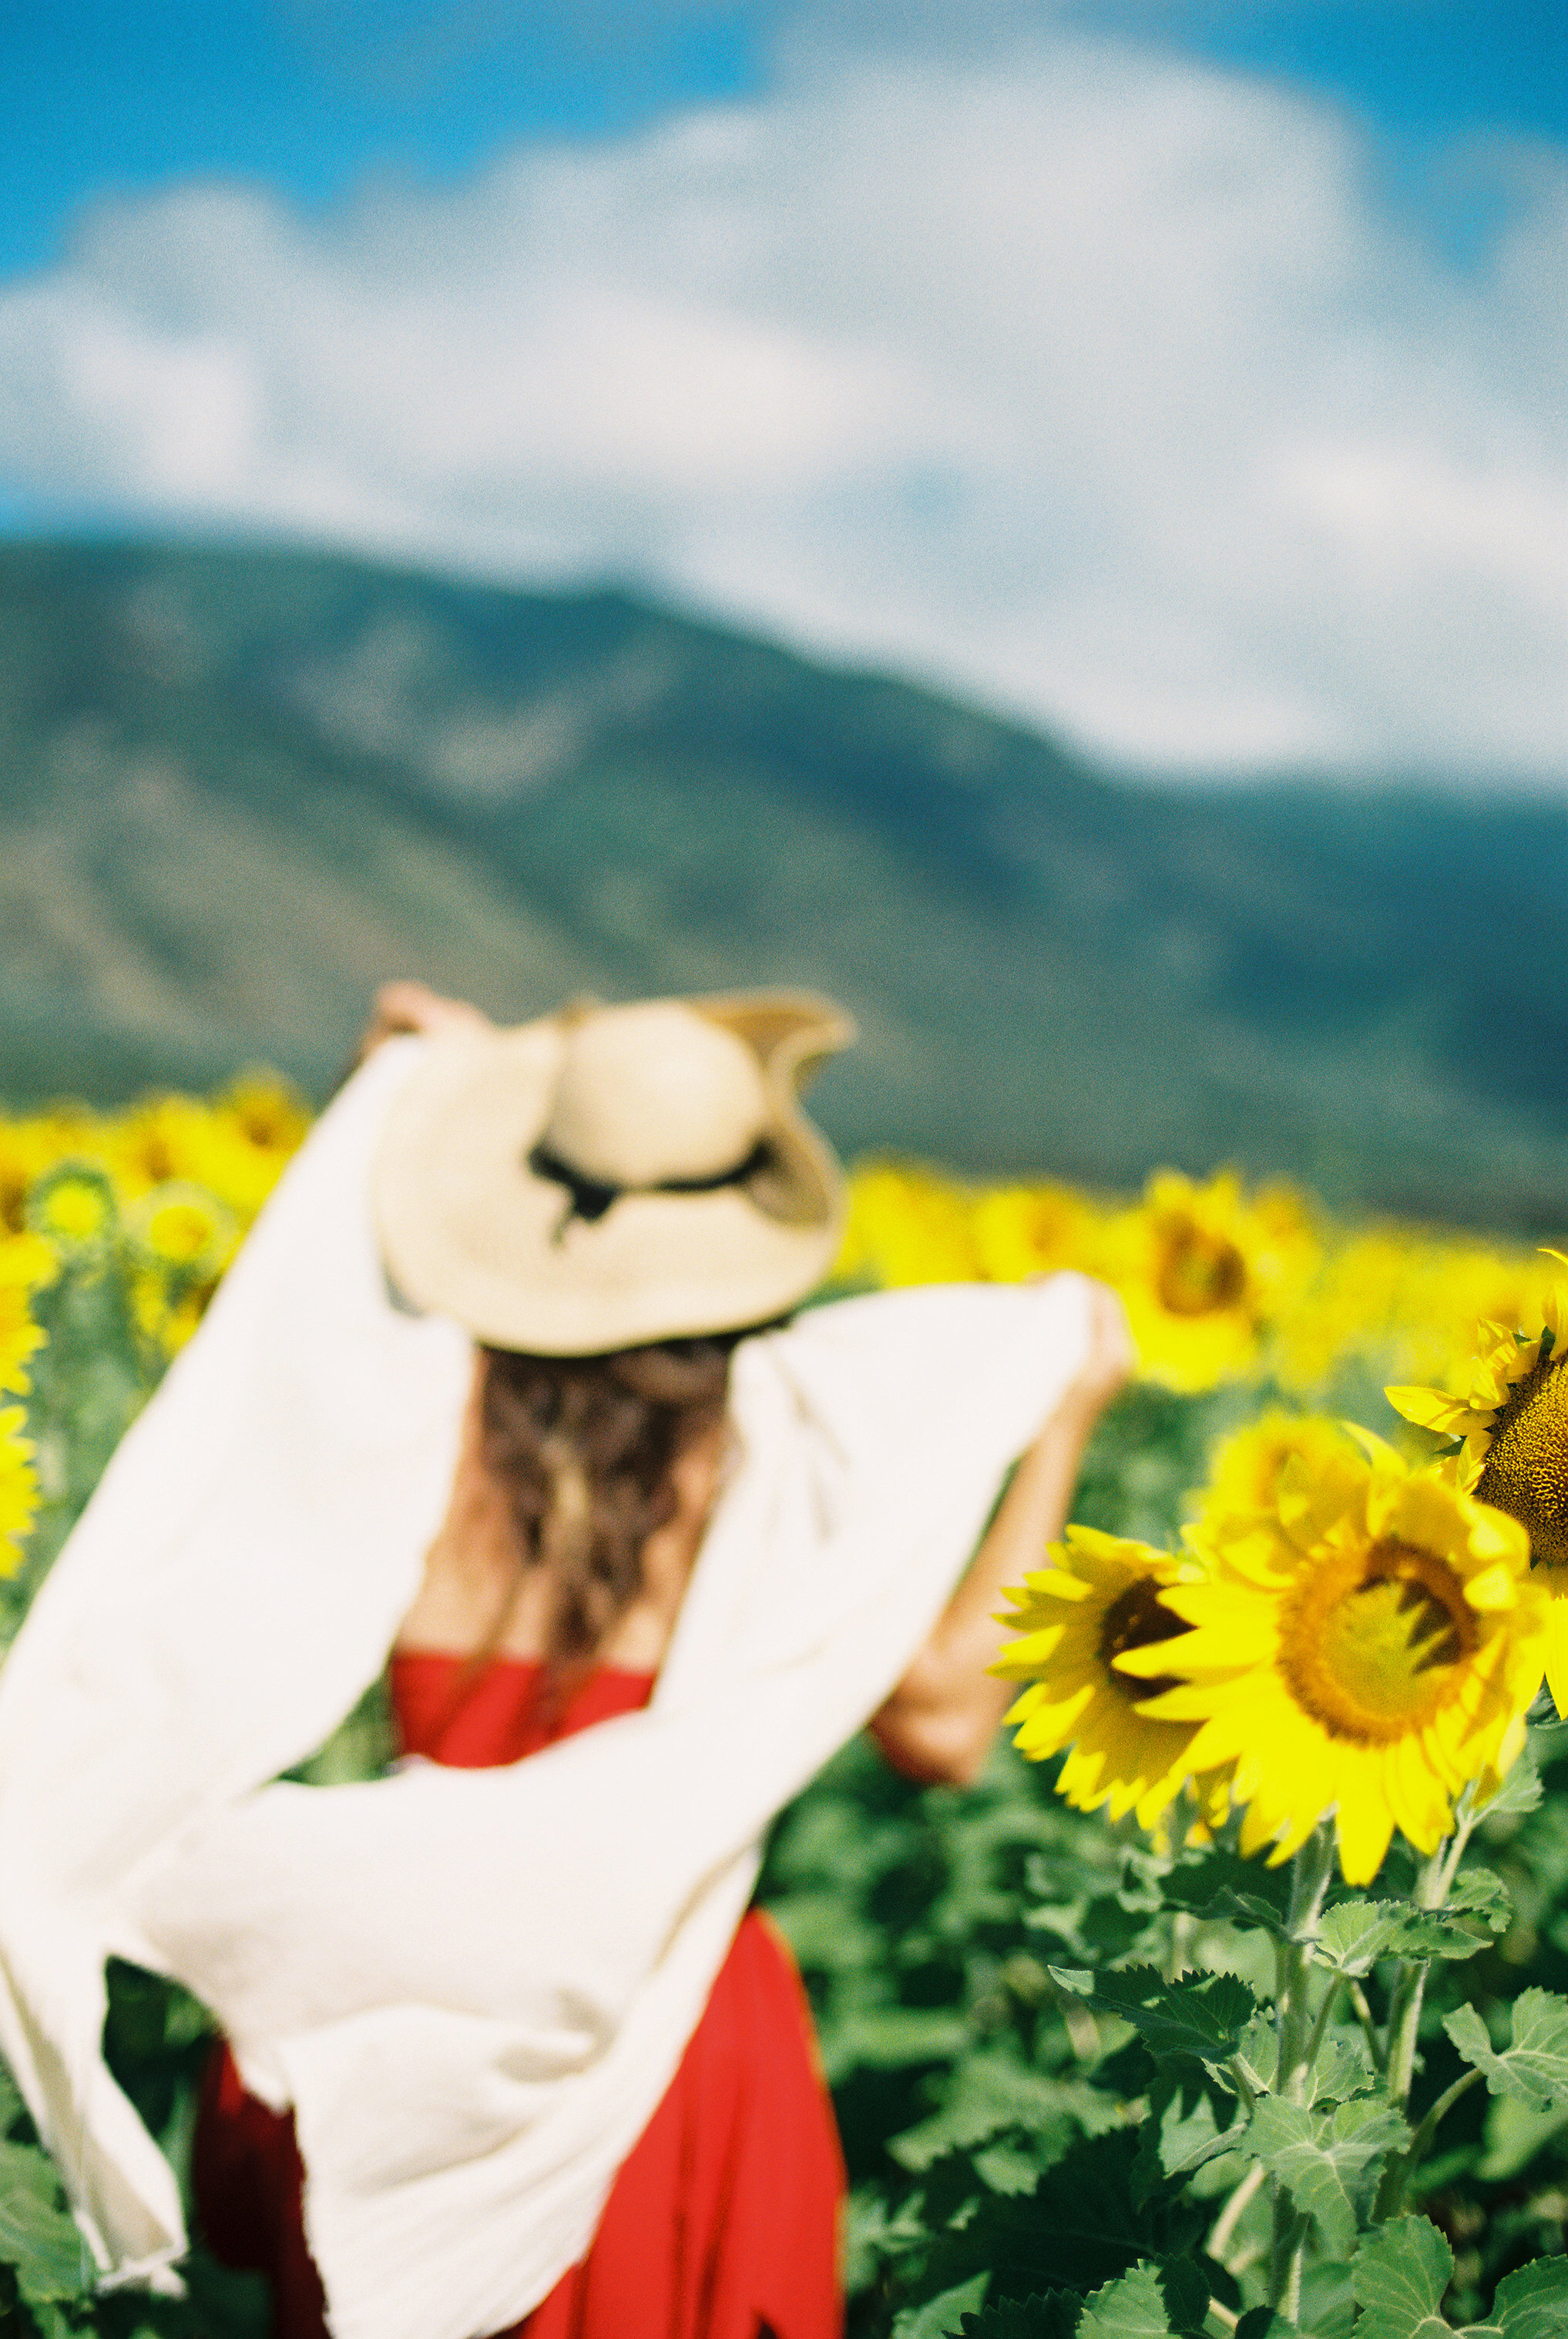 maui-sunflower-field-girl-red-dress-white-scarf-hat-mountains.jpg